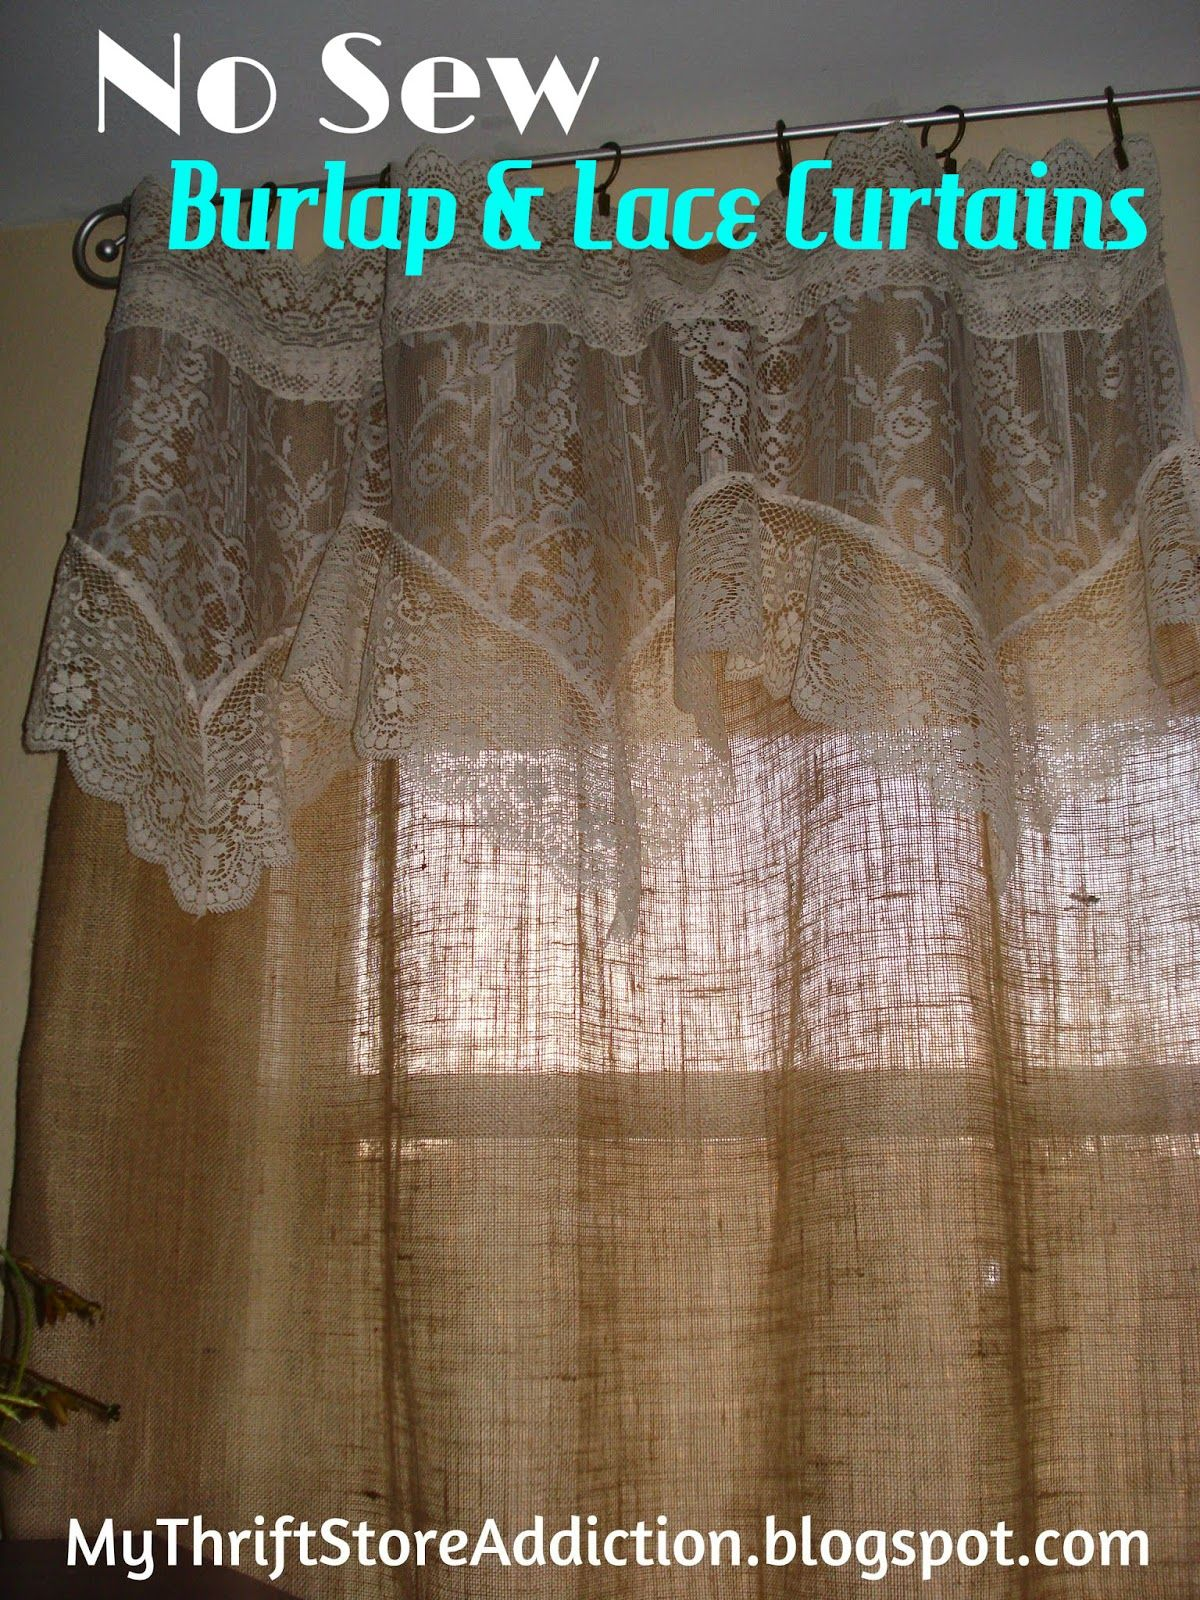 Refresh Your Home No Sew Burlap and Lace Curtains